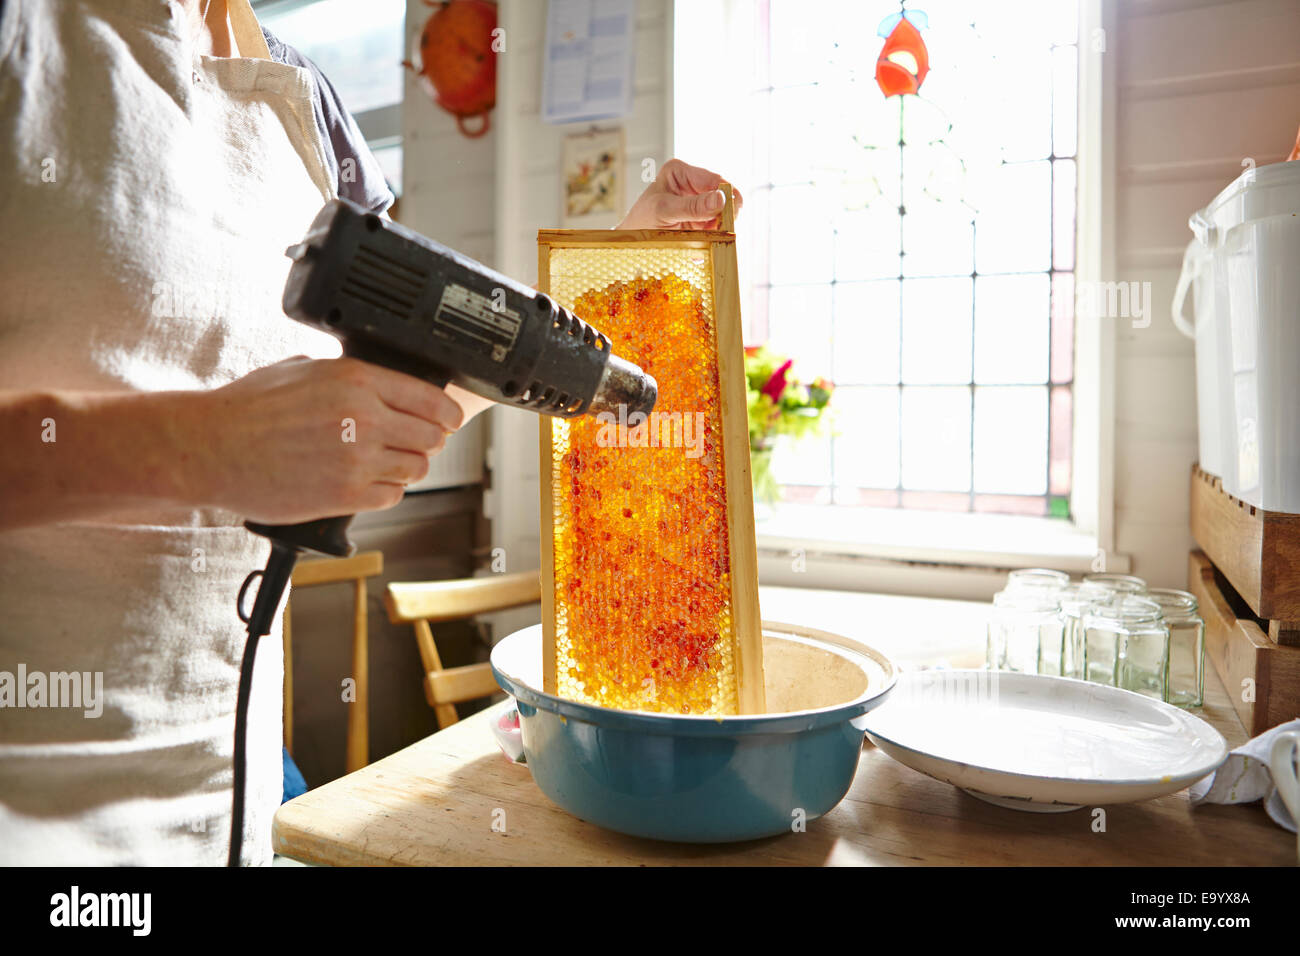 Female beekeeper in kitchen melting wax on frame of honey - Stock Image